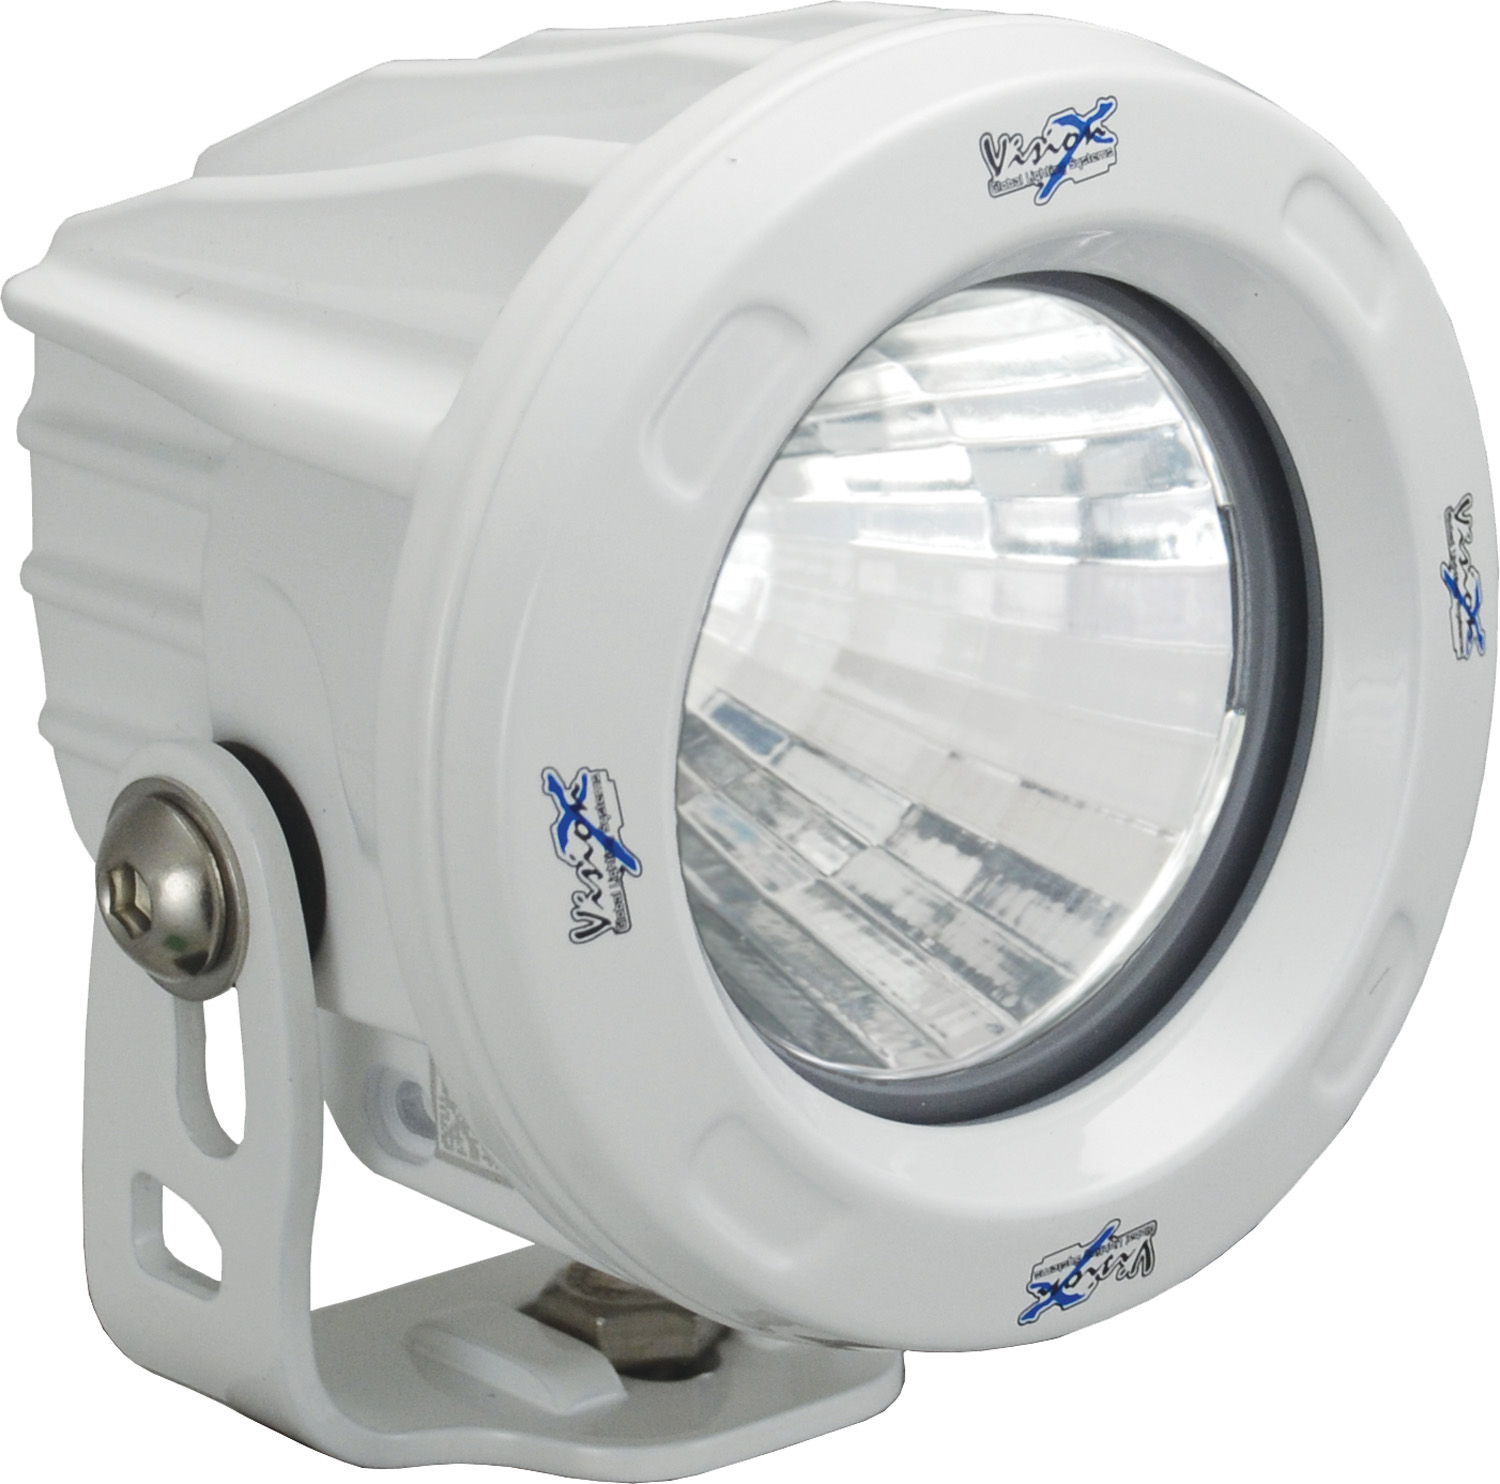 OPTIMUS ROUND WHITE 1 10W LED 60? FLOOD